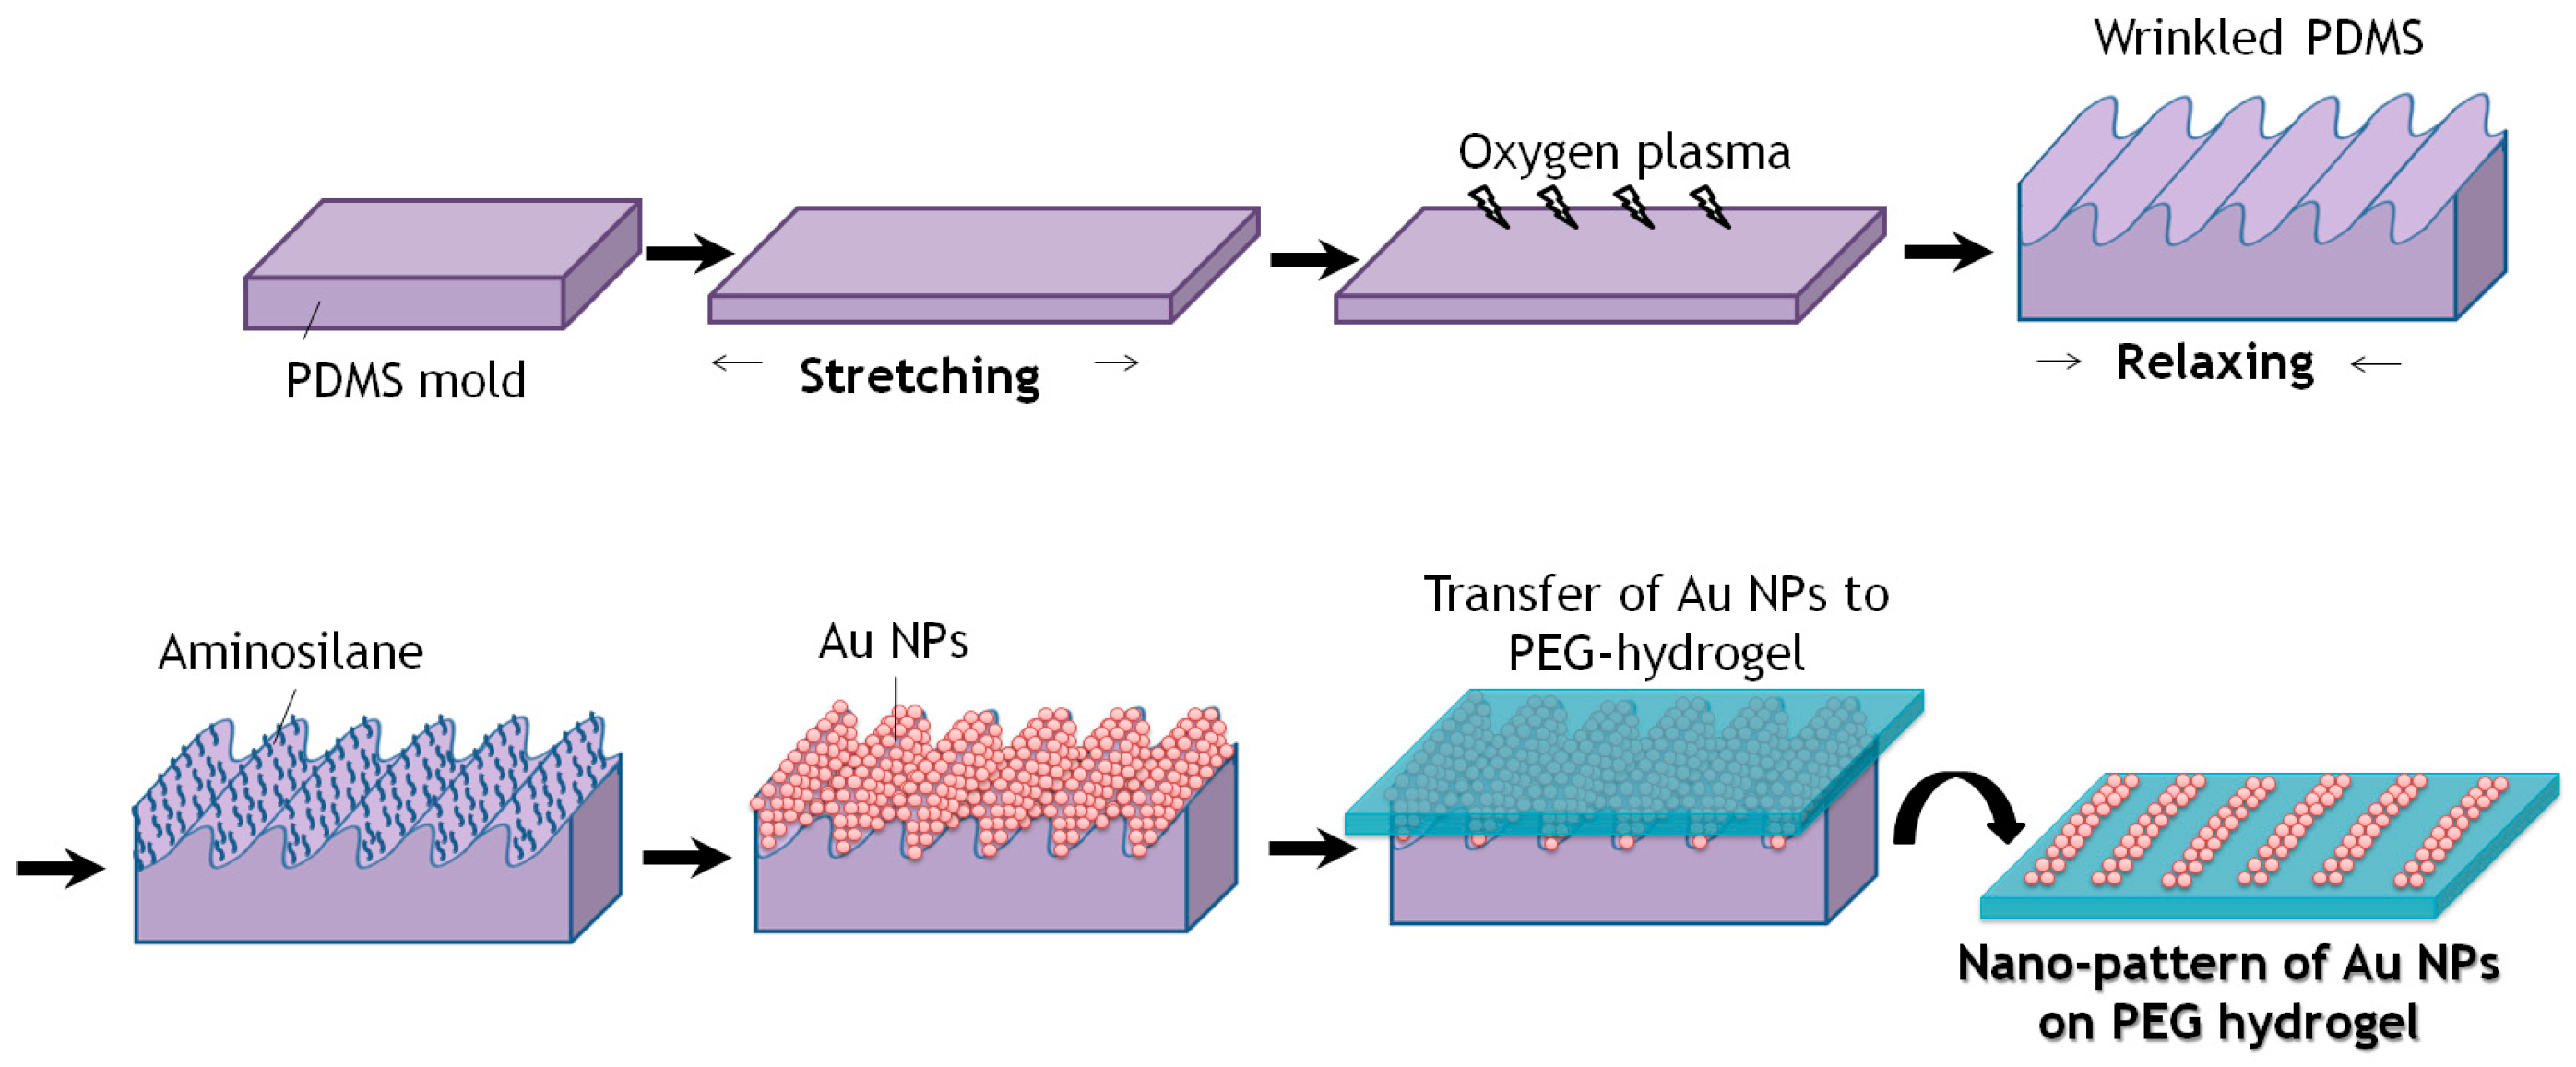 polymers-09-00199-g002 Afm Schematic on